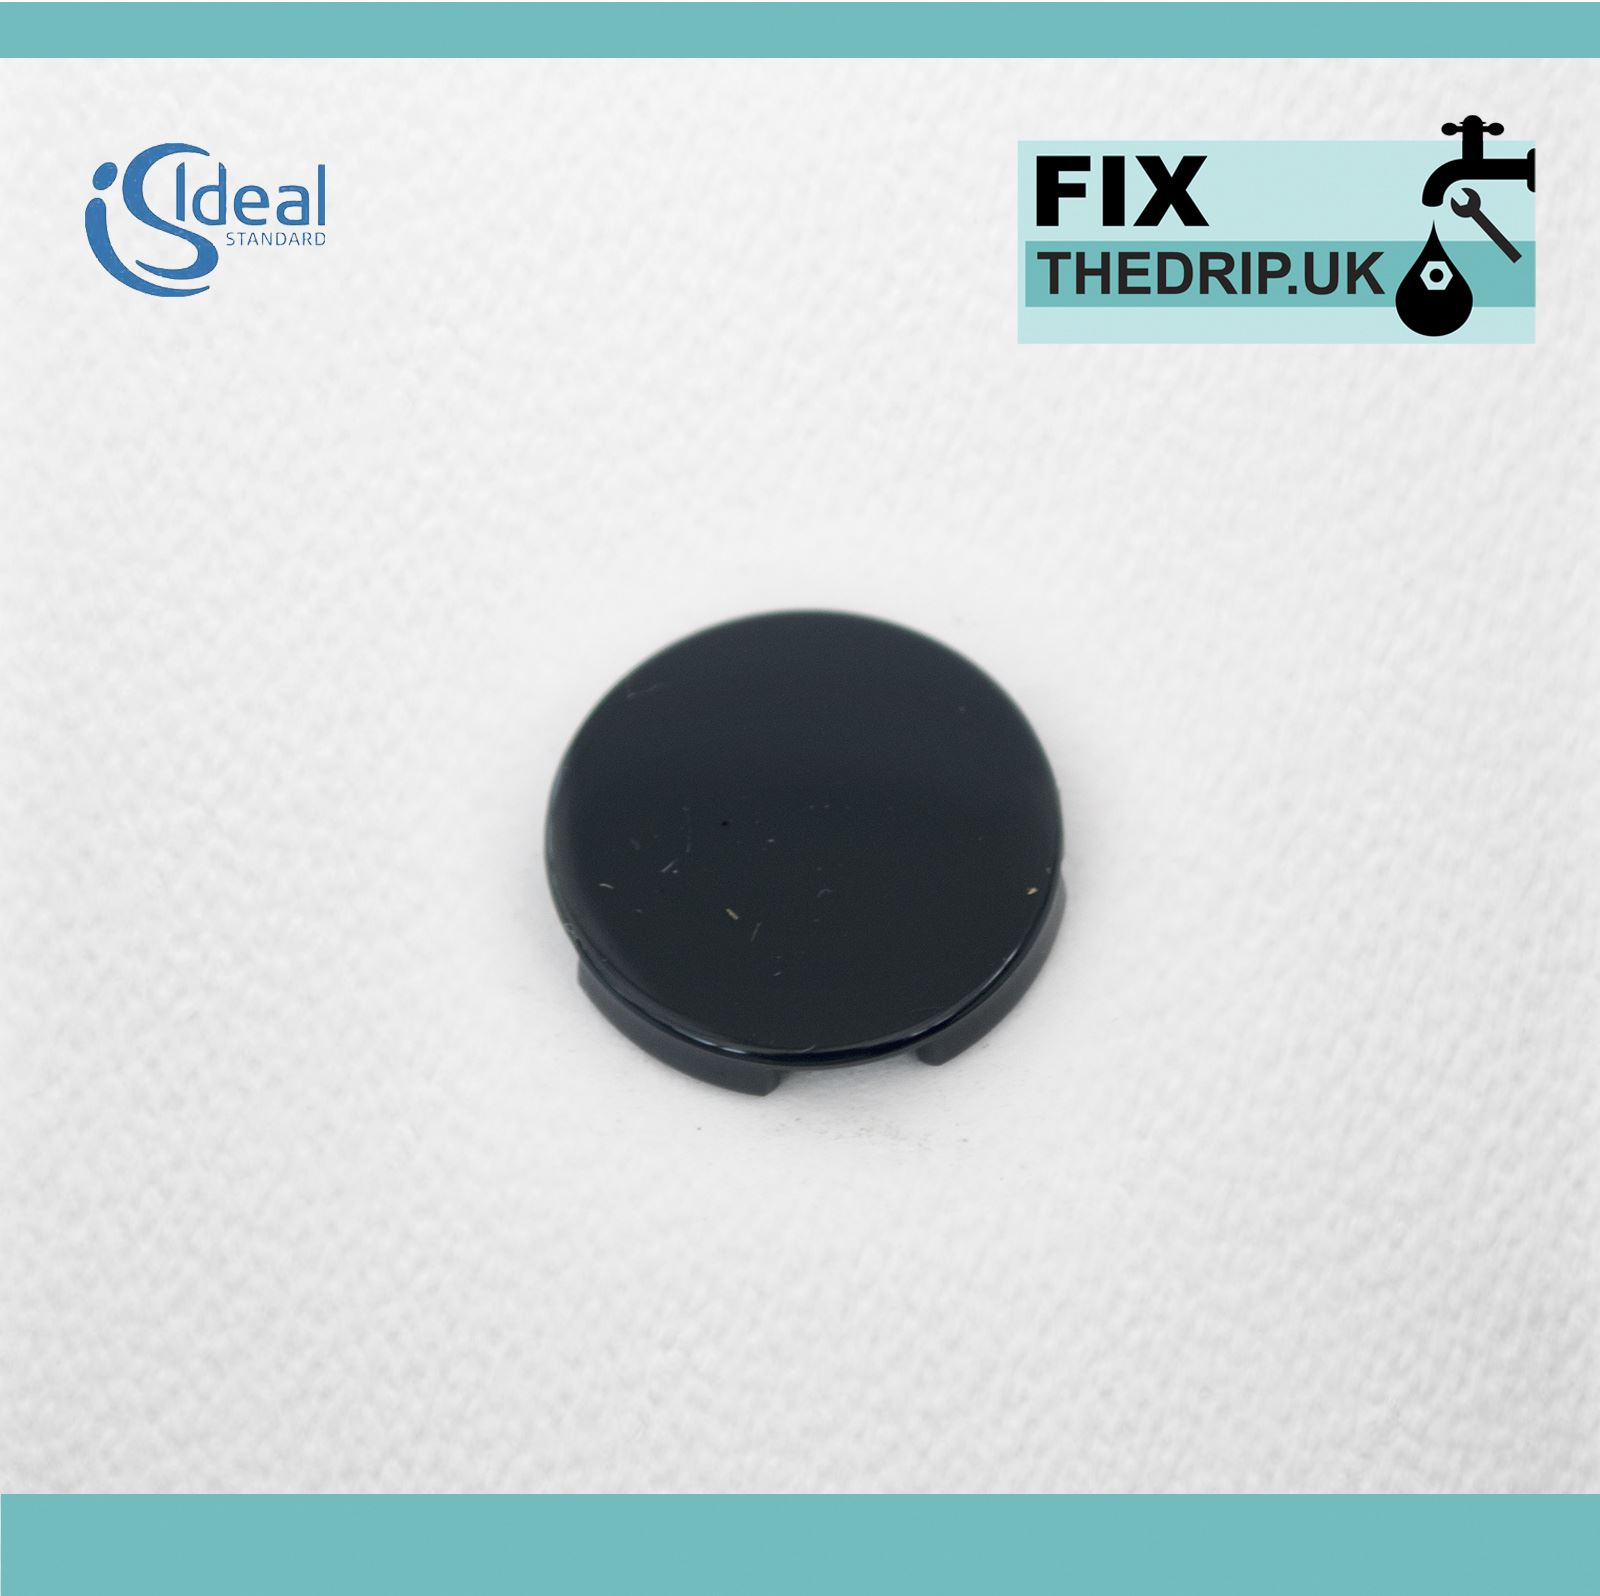 Ideal Standard A962589NU Trevi Therm temperature control nut Business, Office & Industrial Building Materials & Supplies